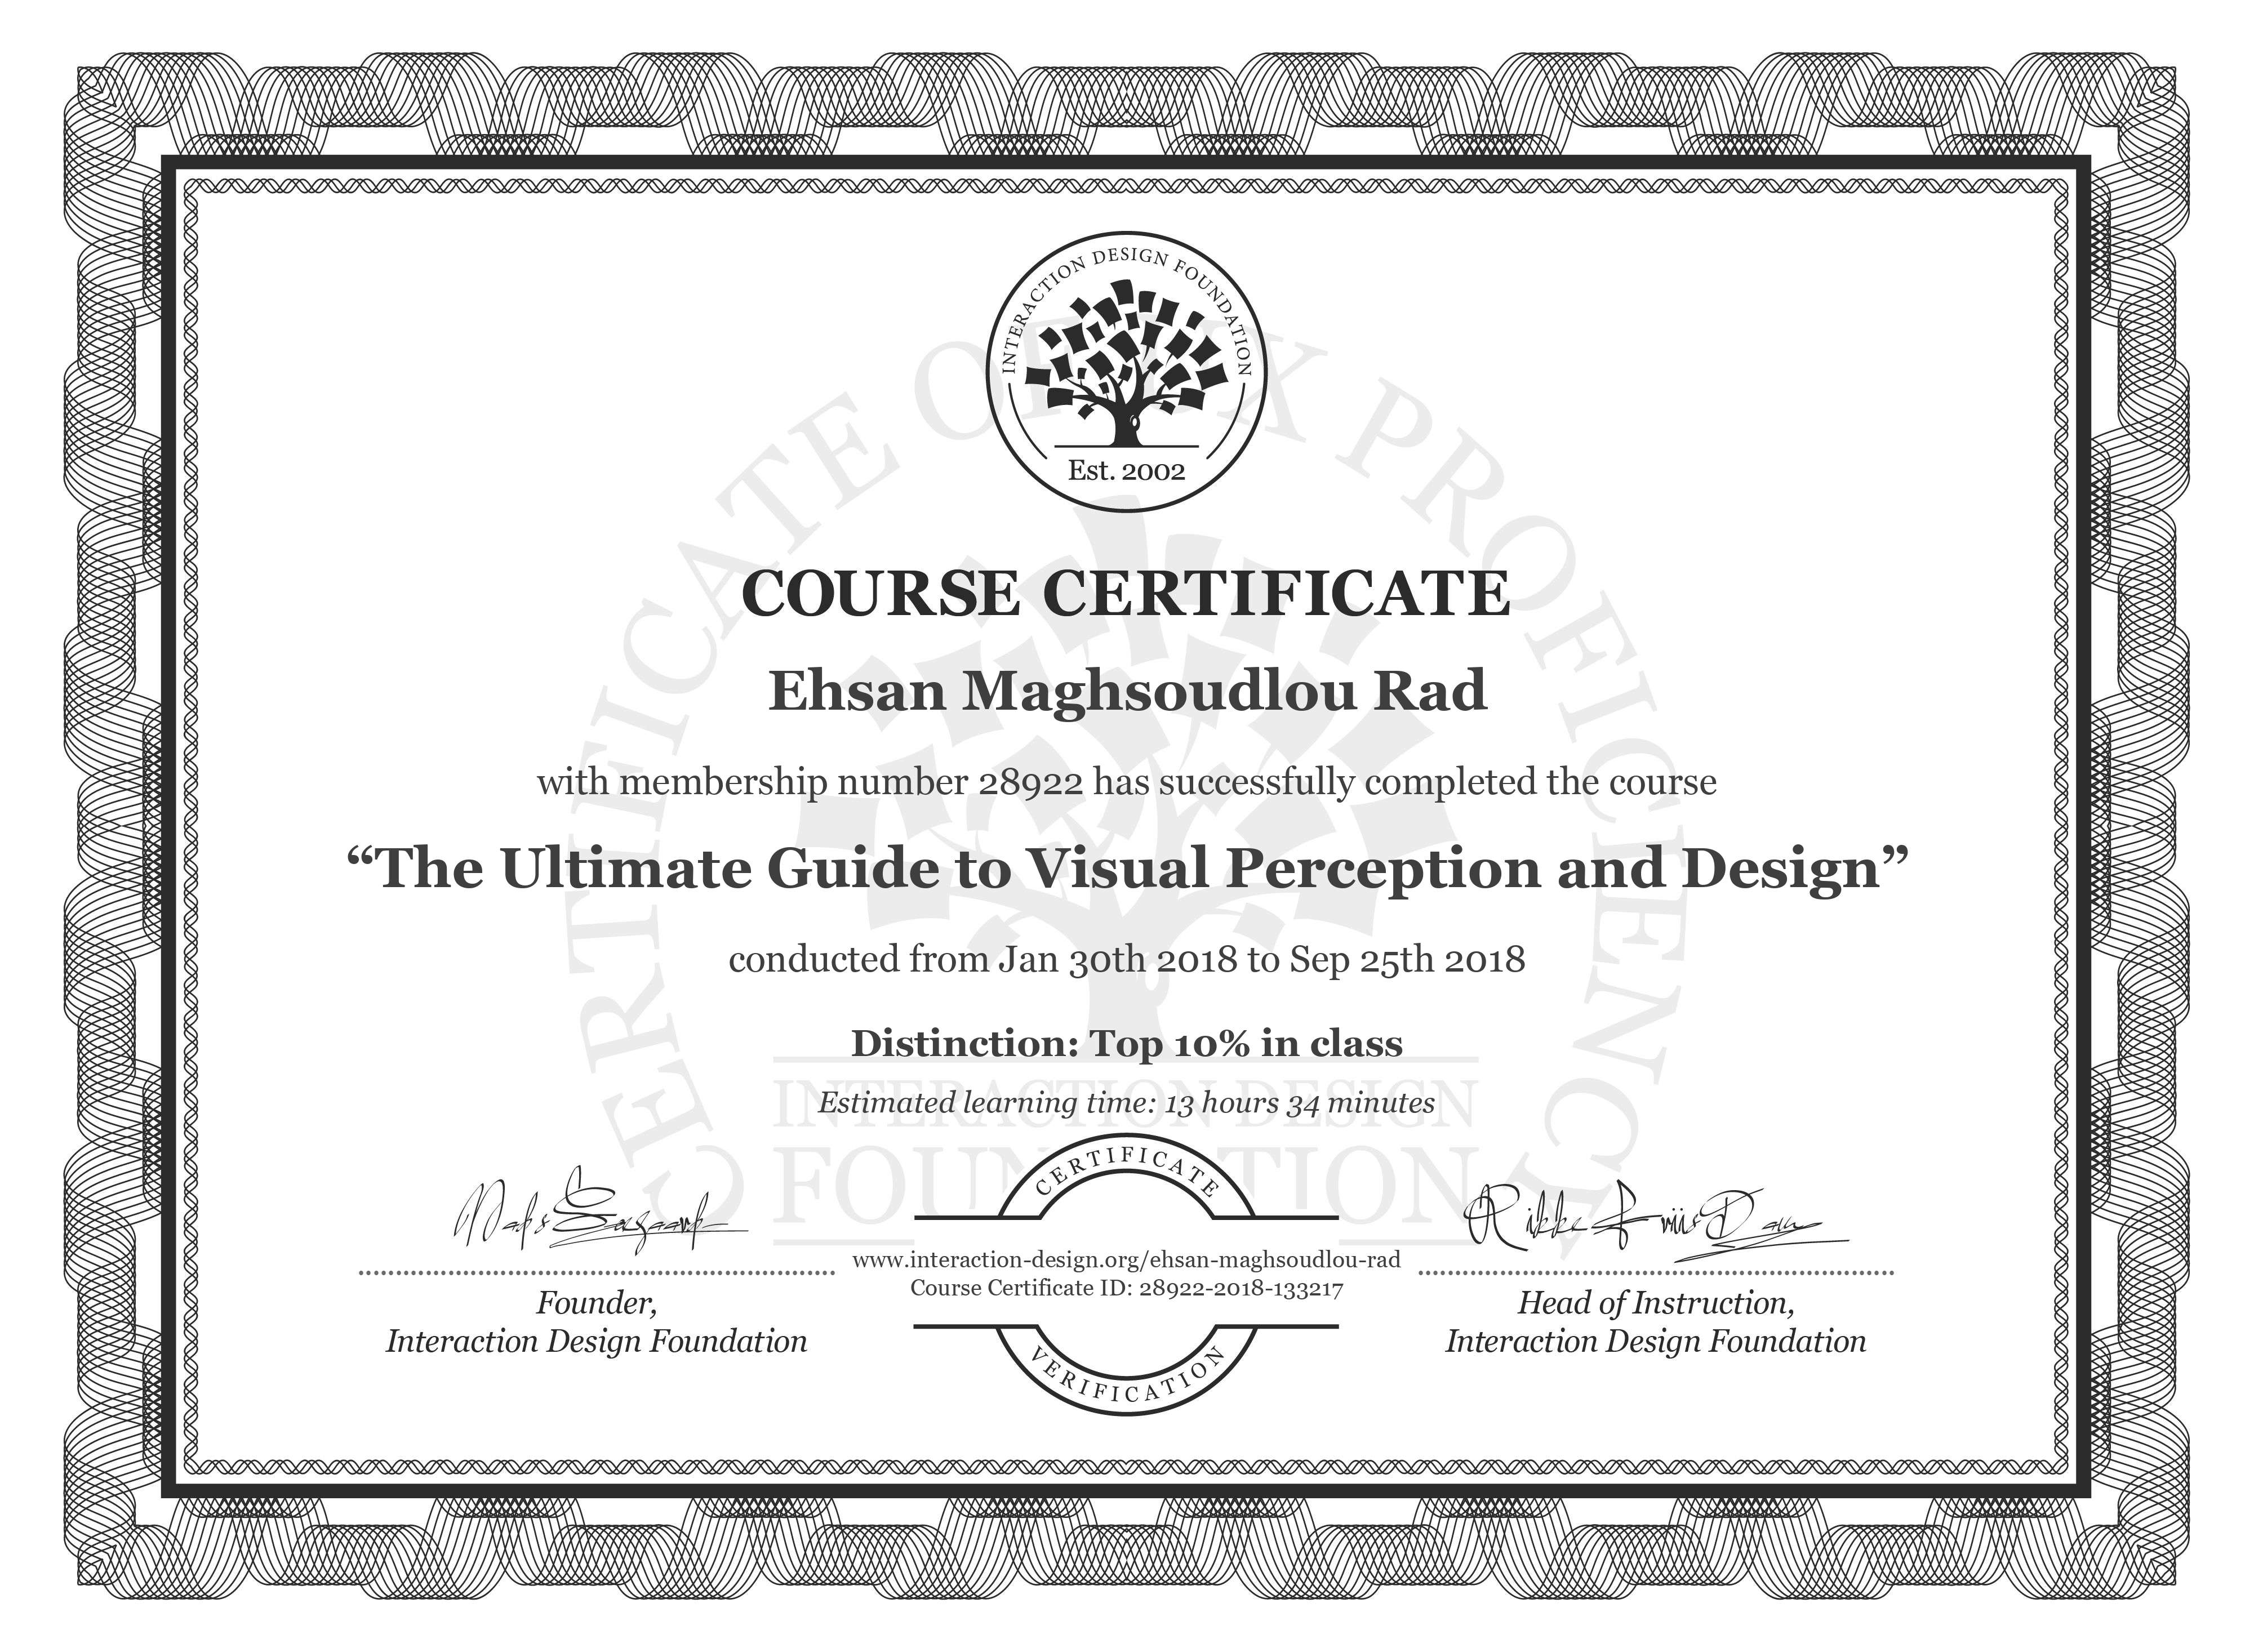 Ehsan Maghsoudlou Rad's Course Certificate: The Ultimate Guide to Visual Perception and Design